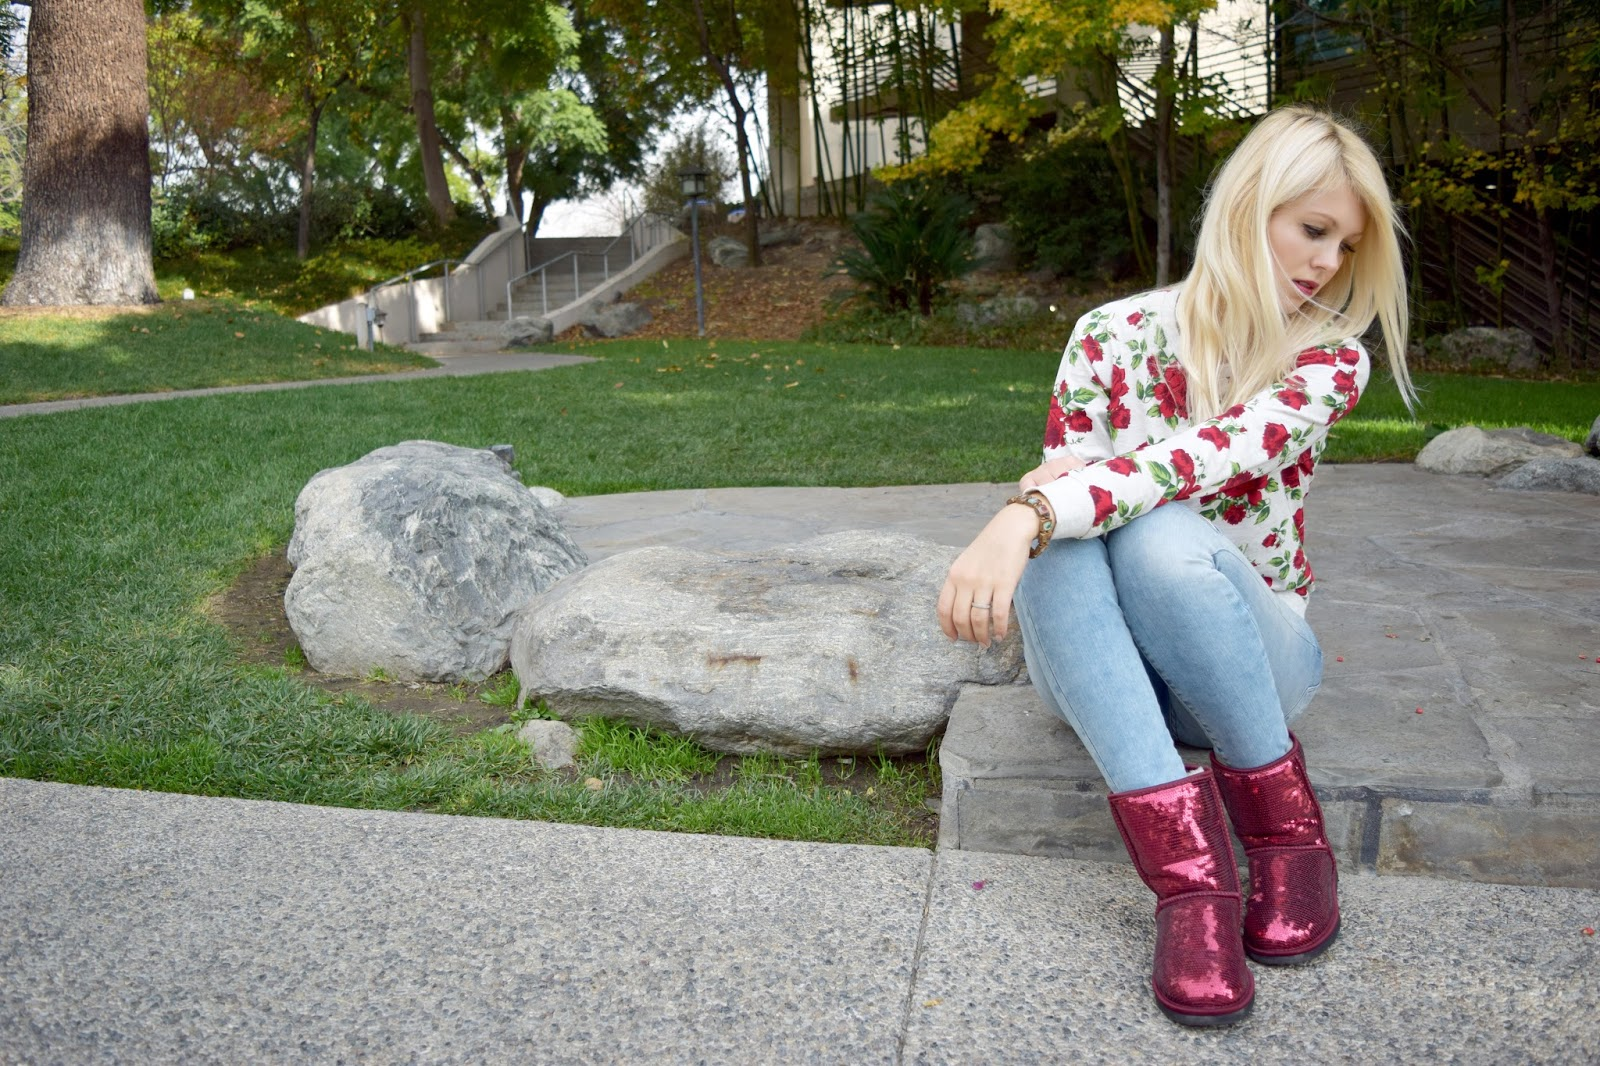 Rose sweater, red ugg, sparkle ugg, ugg, rose, h&m sweater